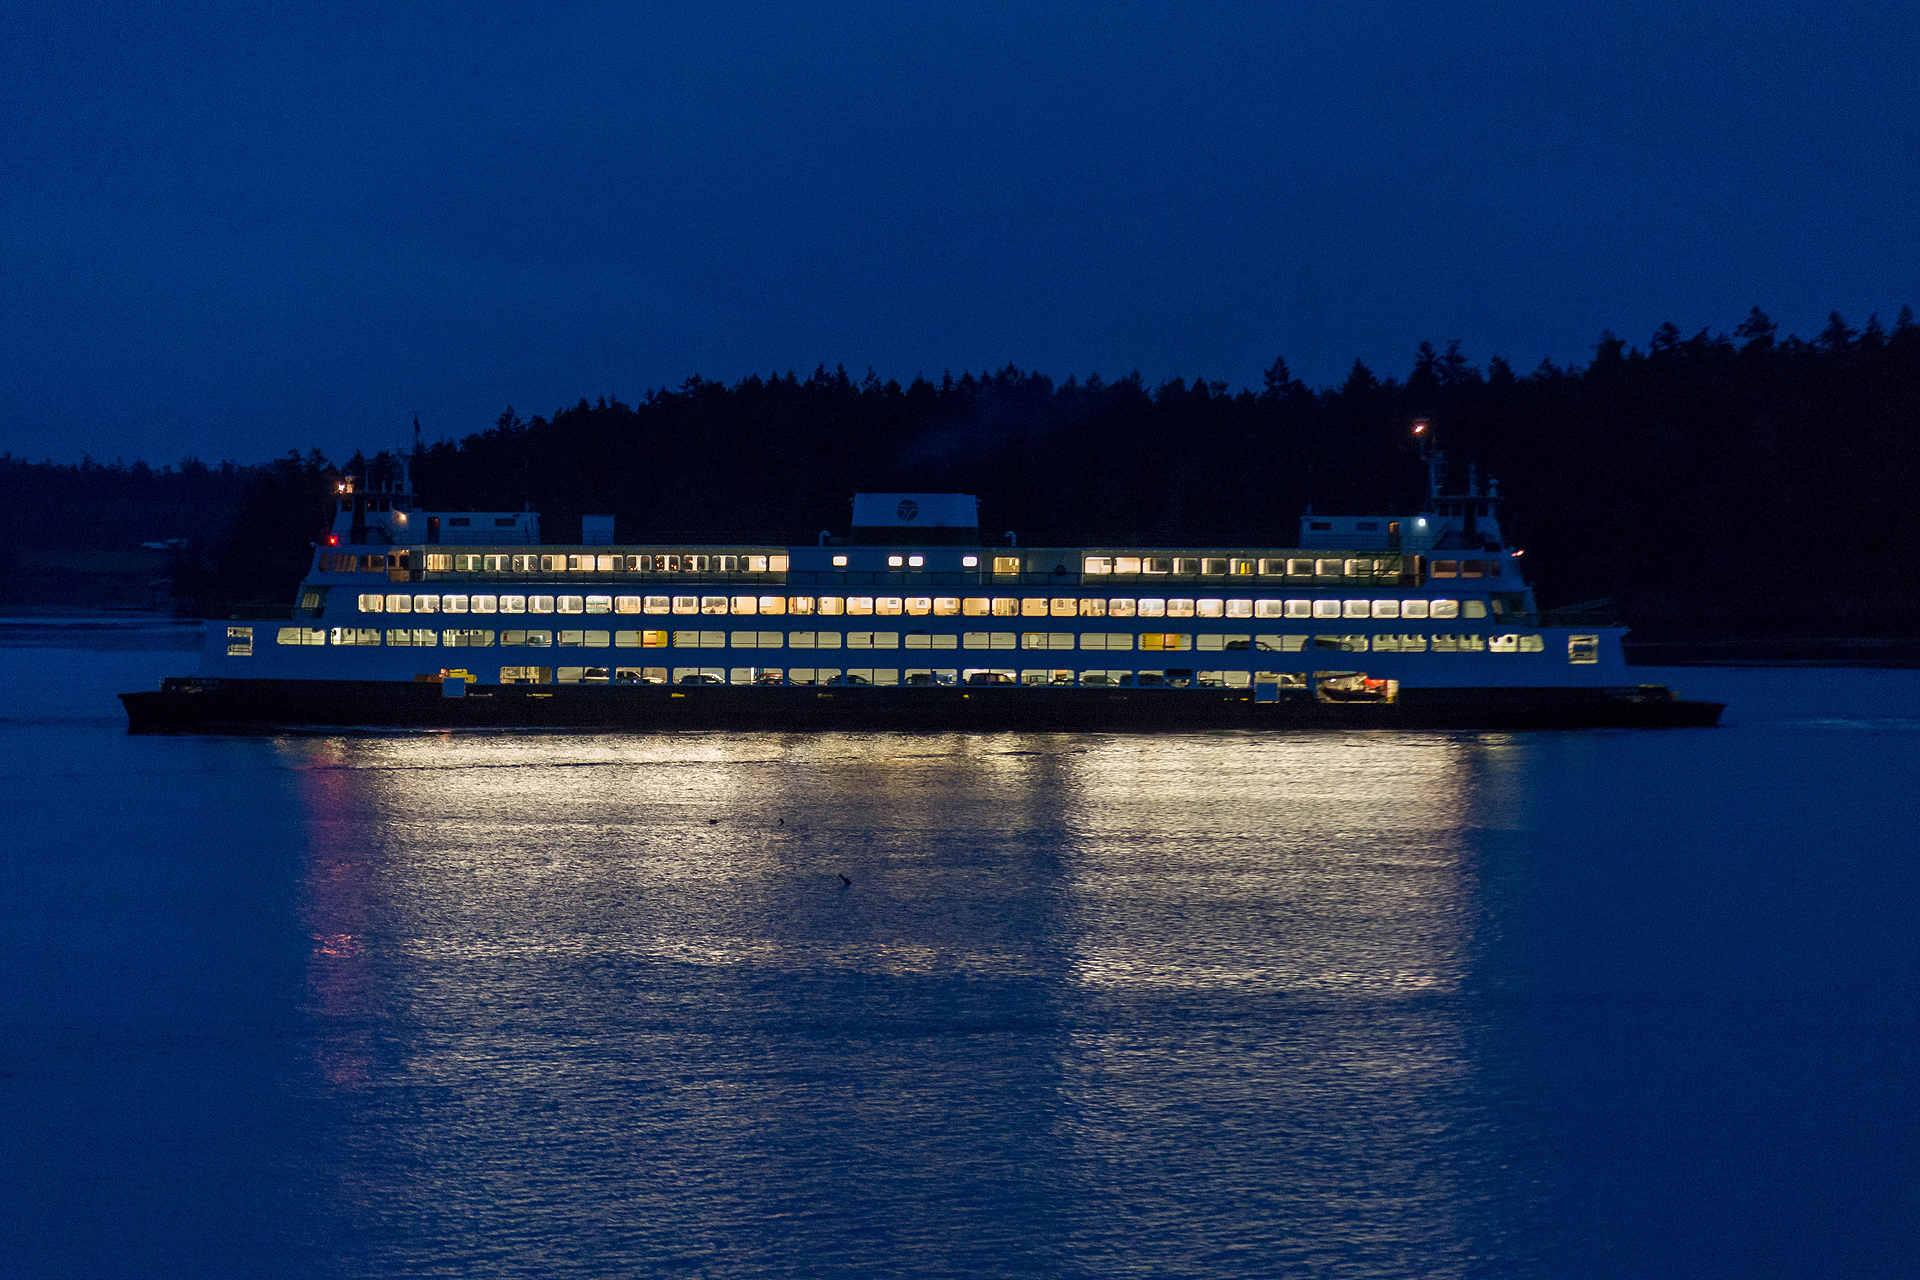 Waveside Dream Ferry Passing